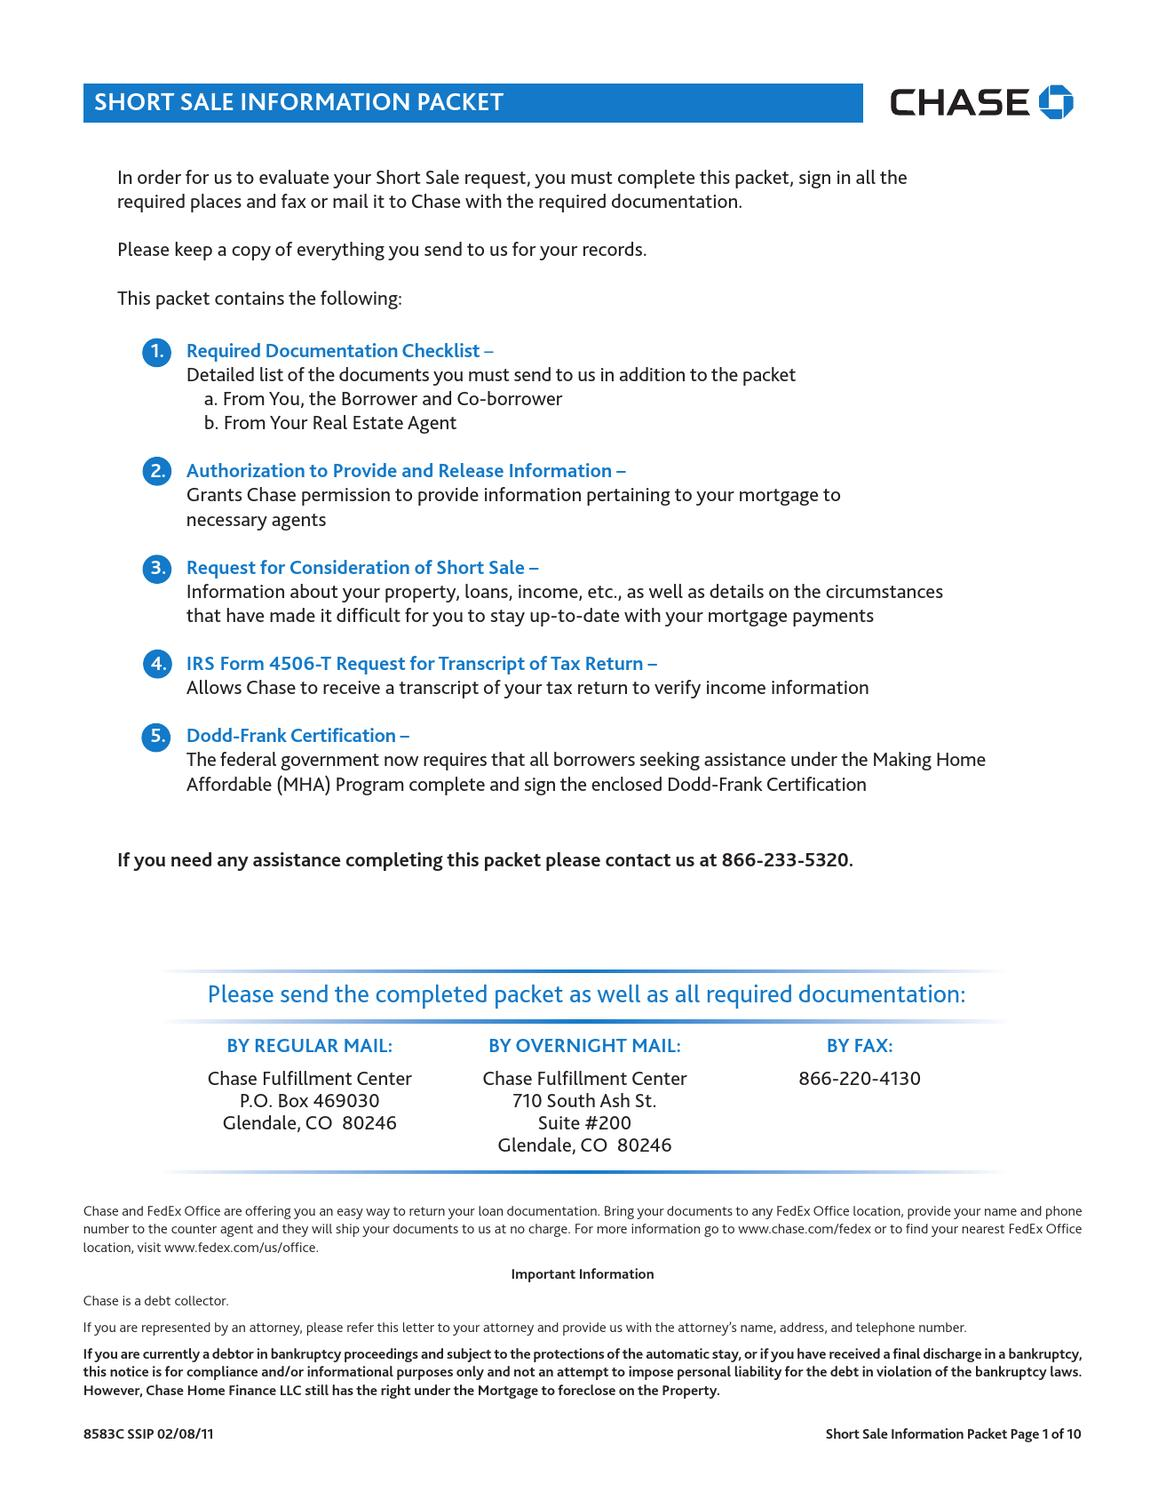 Chase Mortgage Form 4506 T